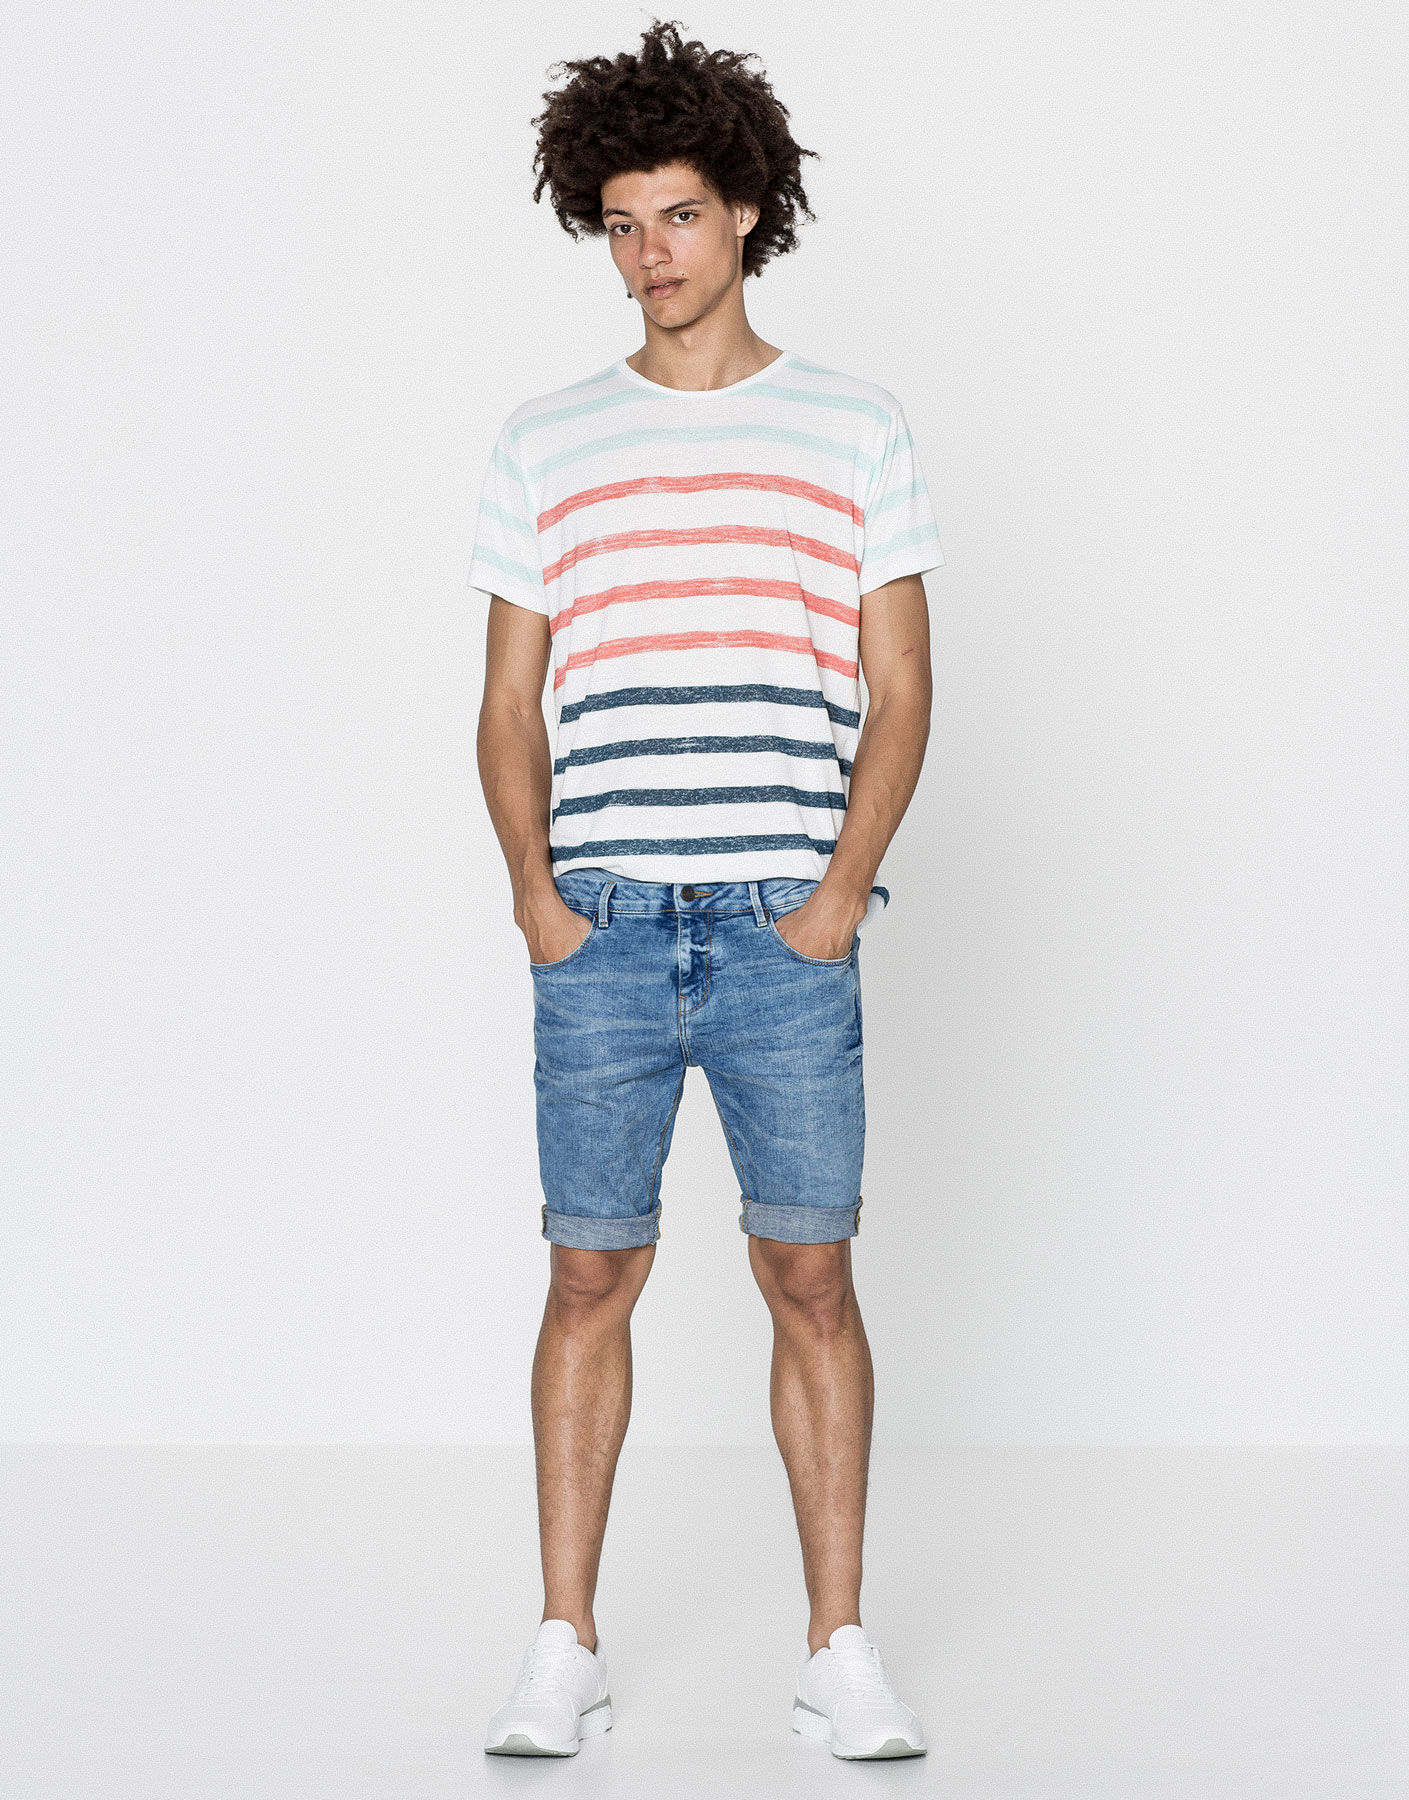 Bermudas denim skinny fit